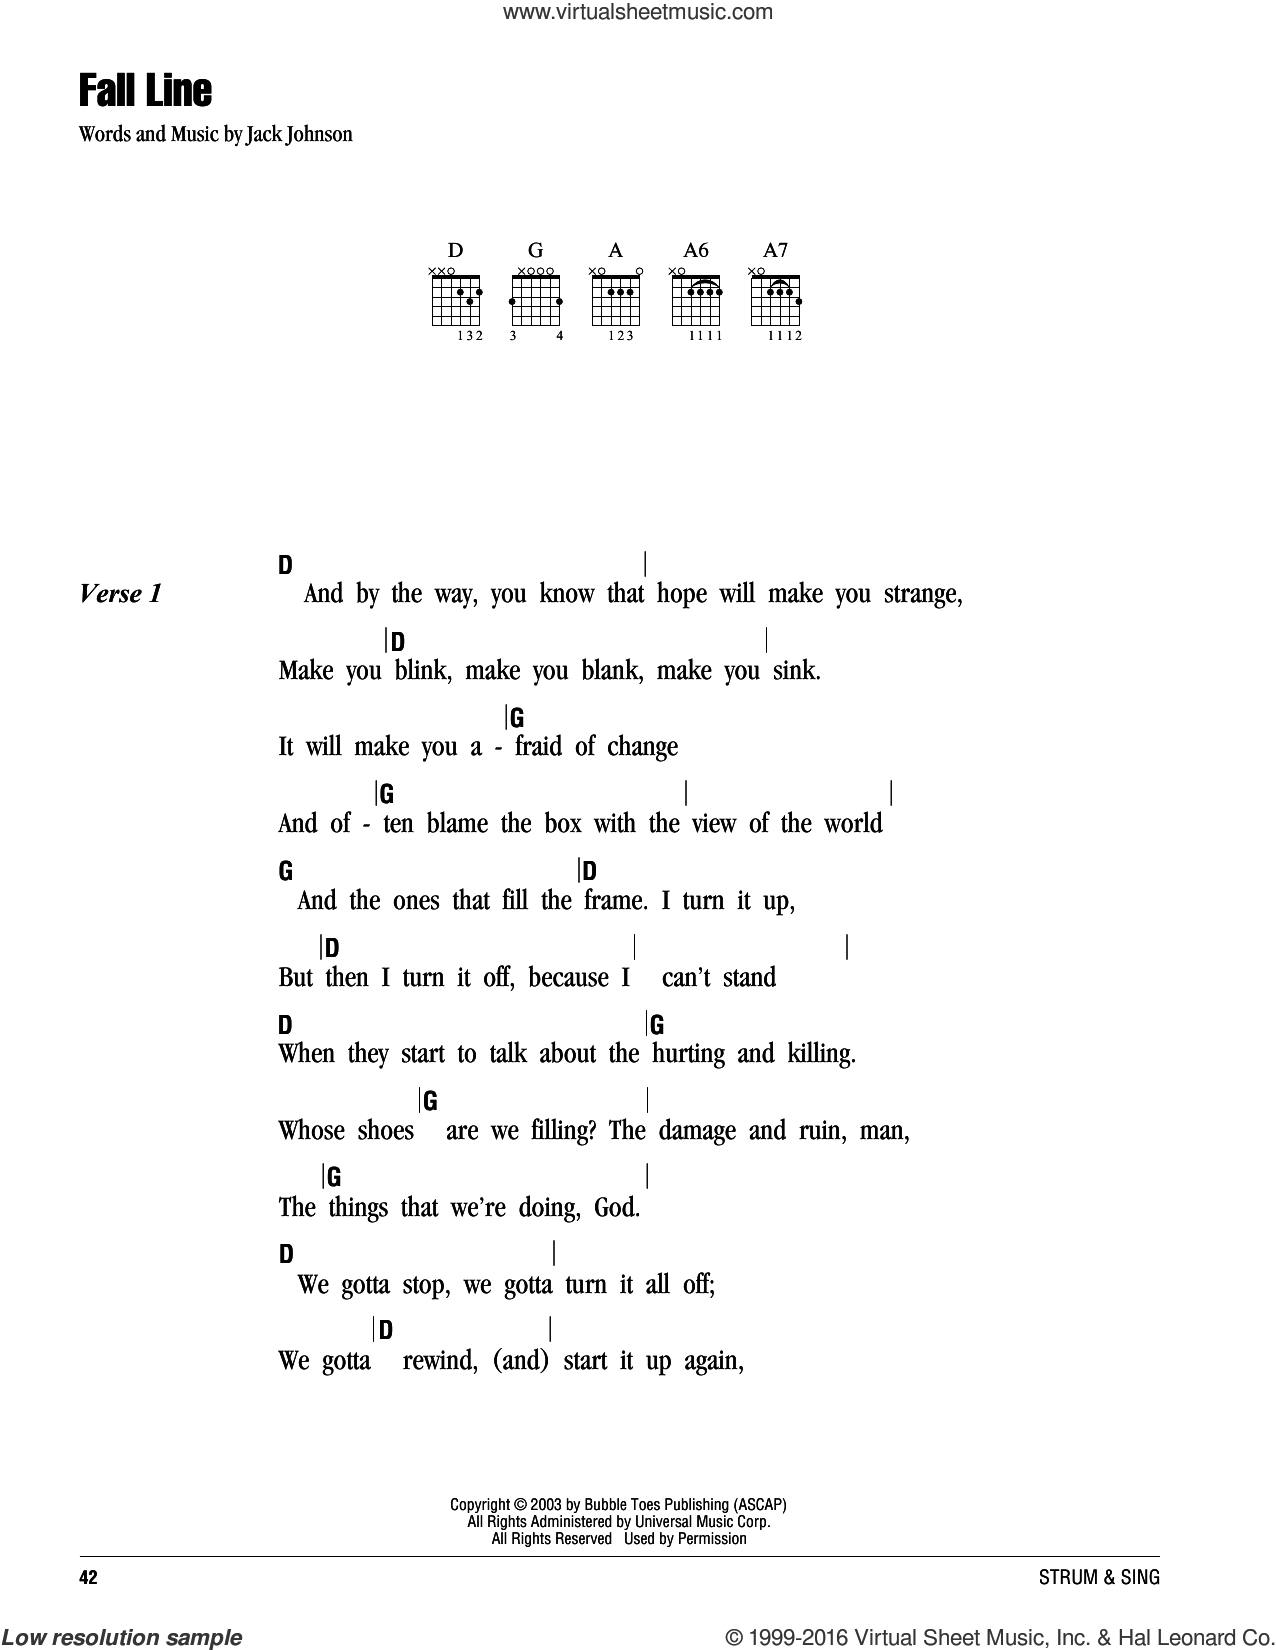 Fall Line sheet music for guitar (chords) by Jack Johnson. Score Image Preview.